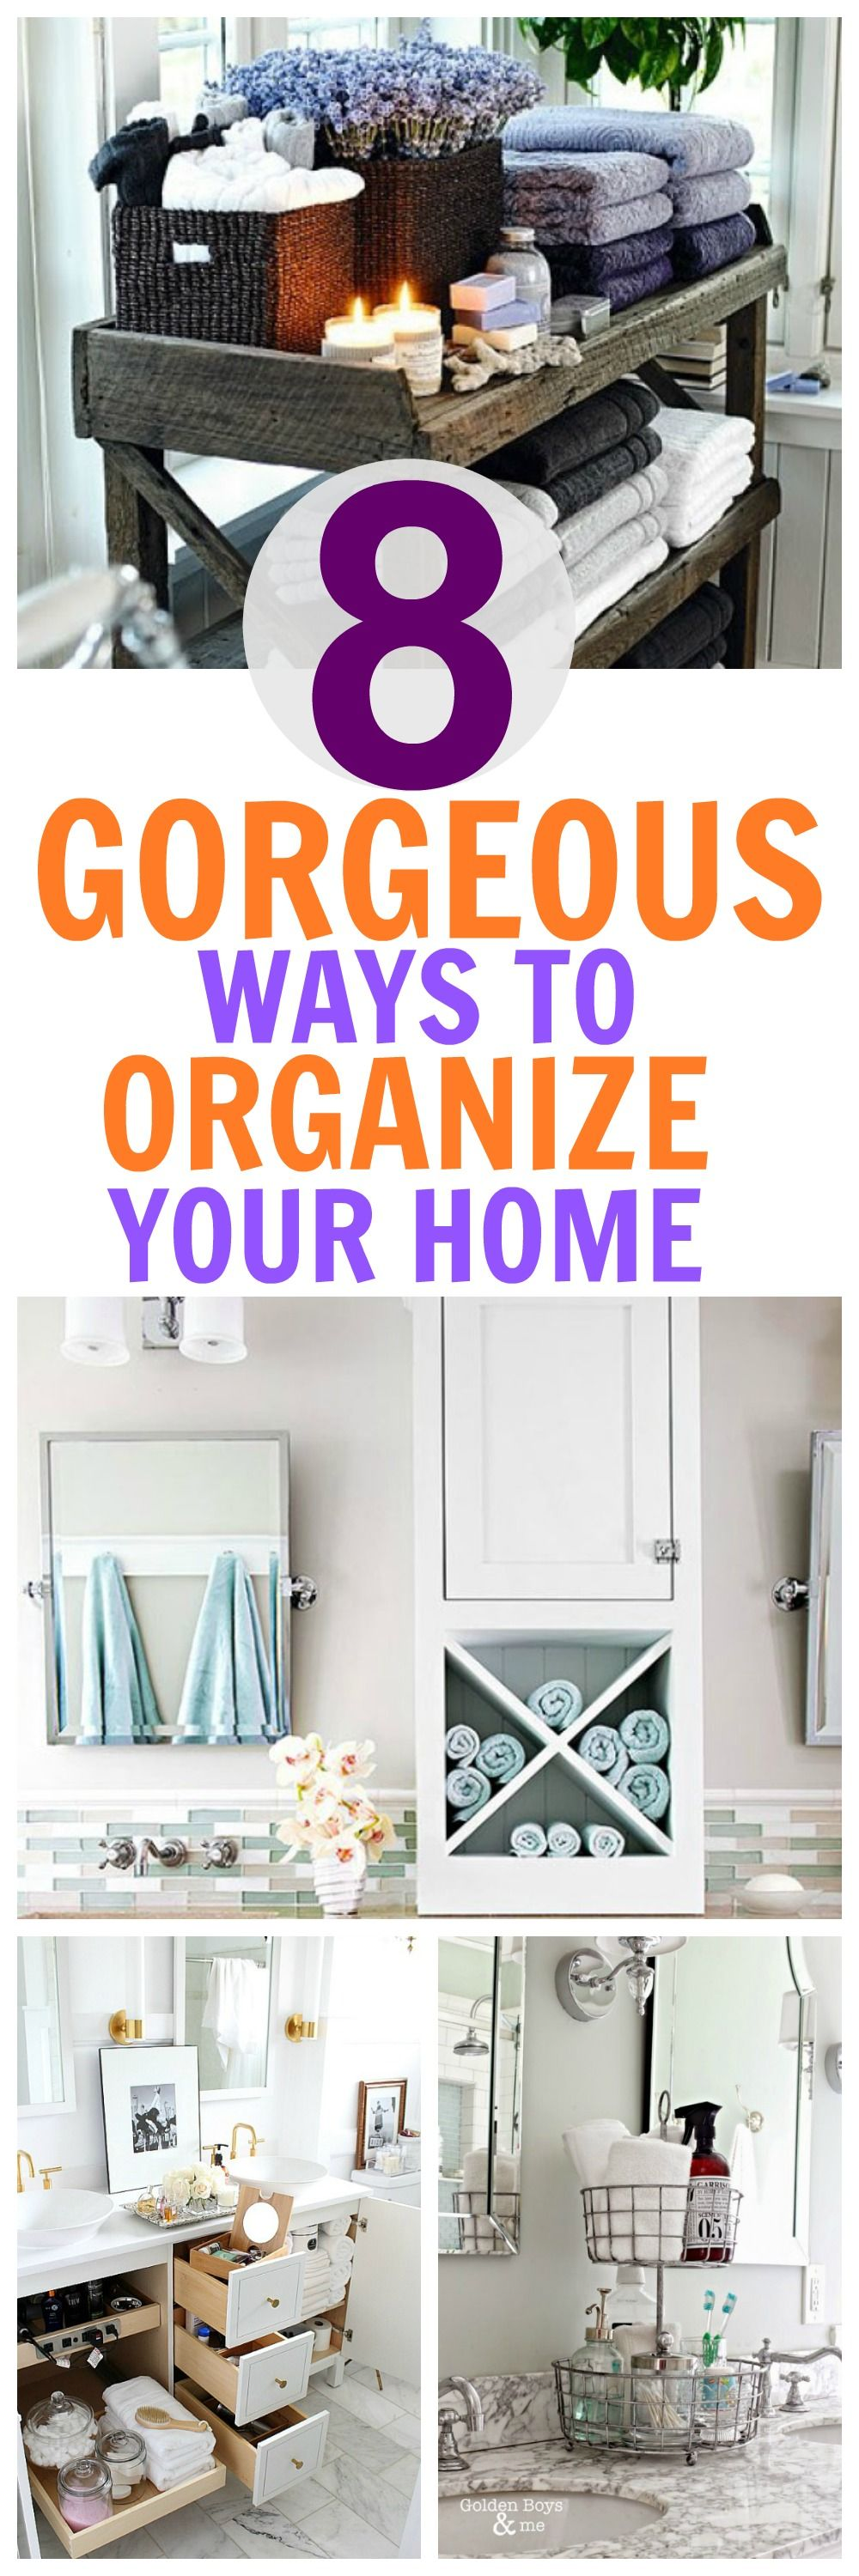 8 Easy Beautiful Ways To Organize Your Bathroom | Organizing, DIY ...